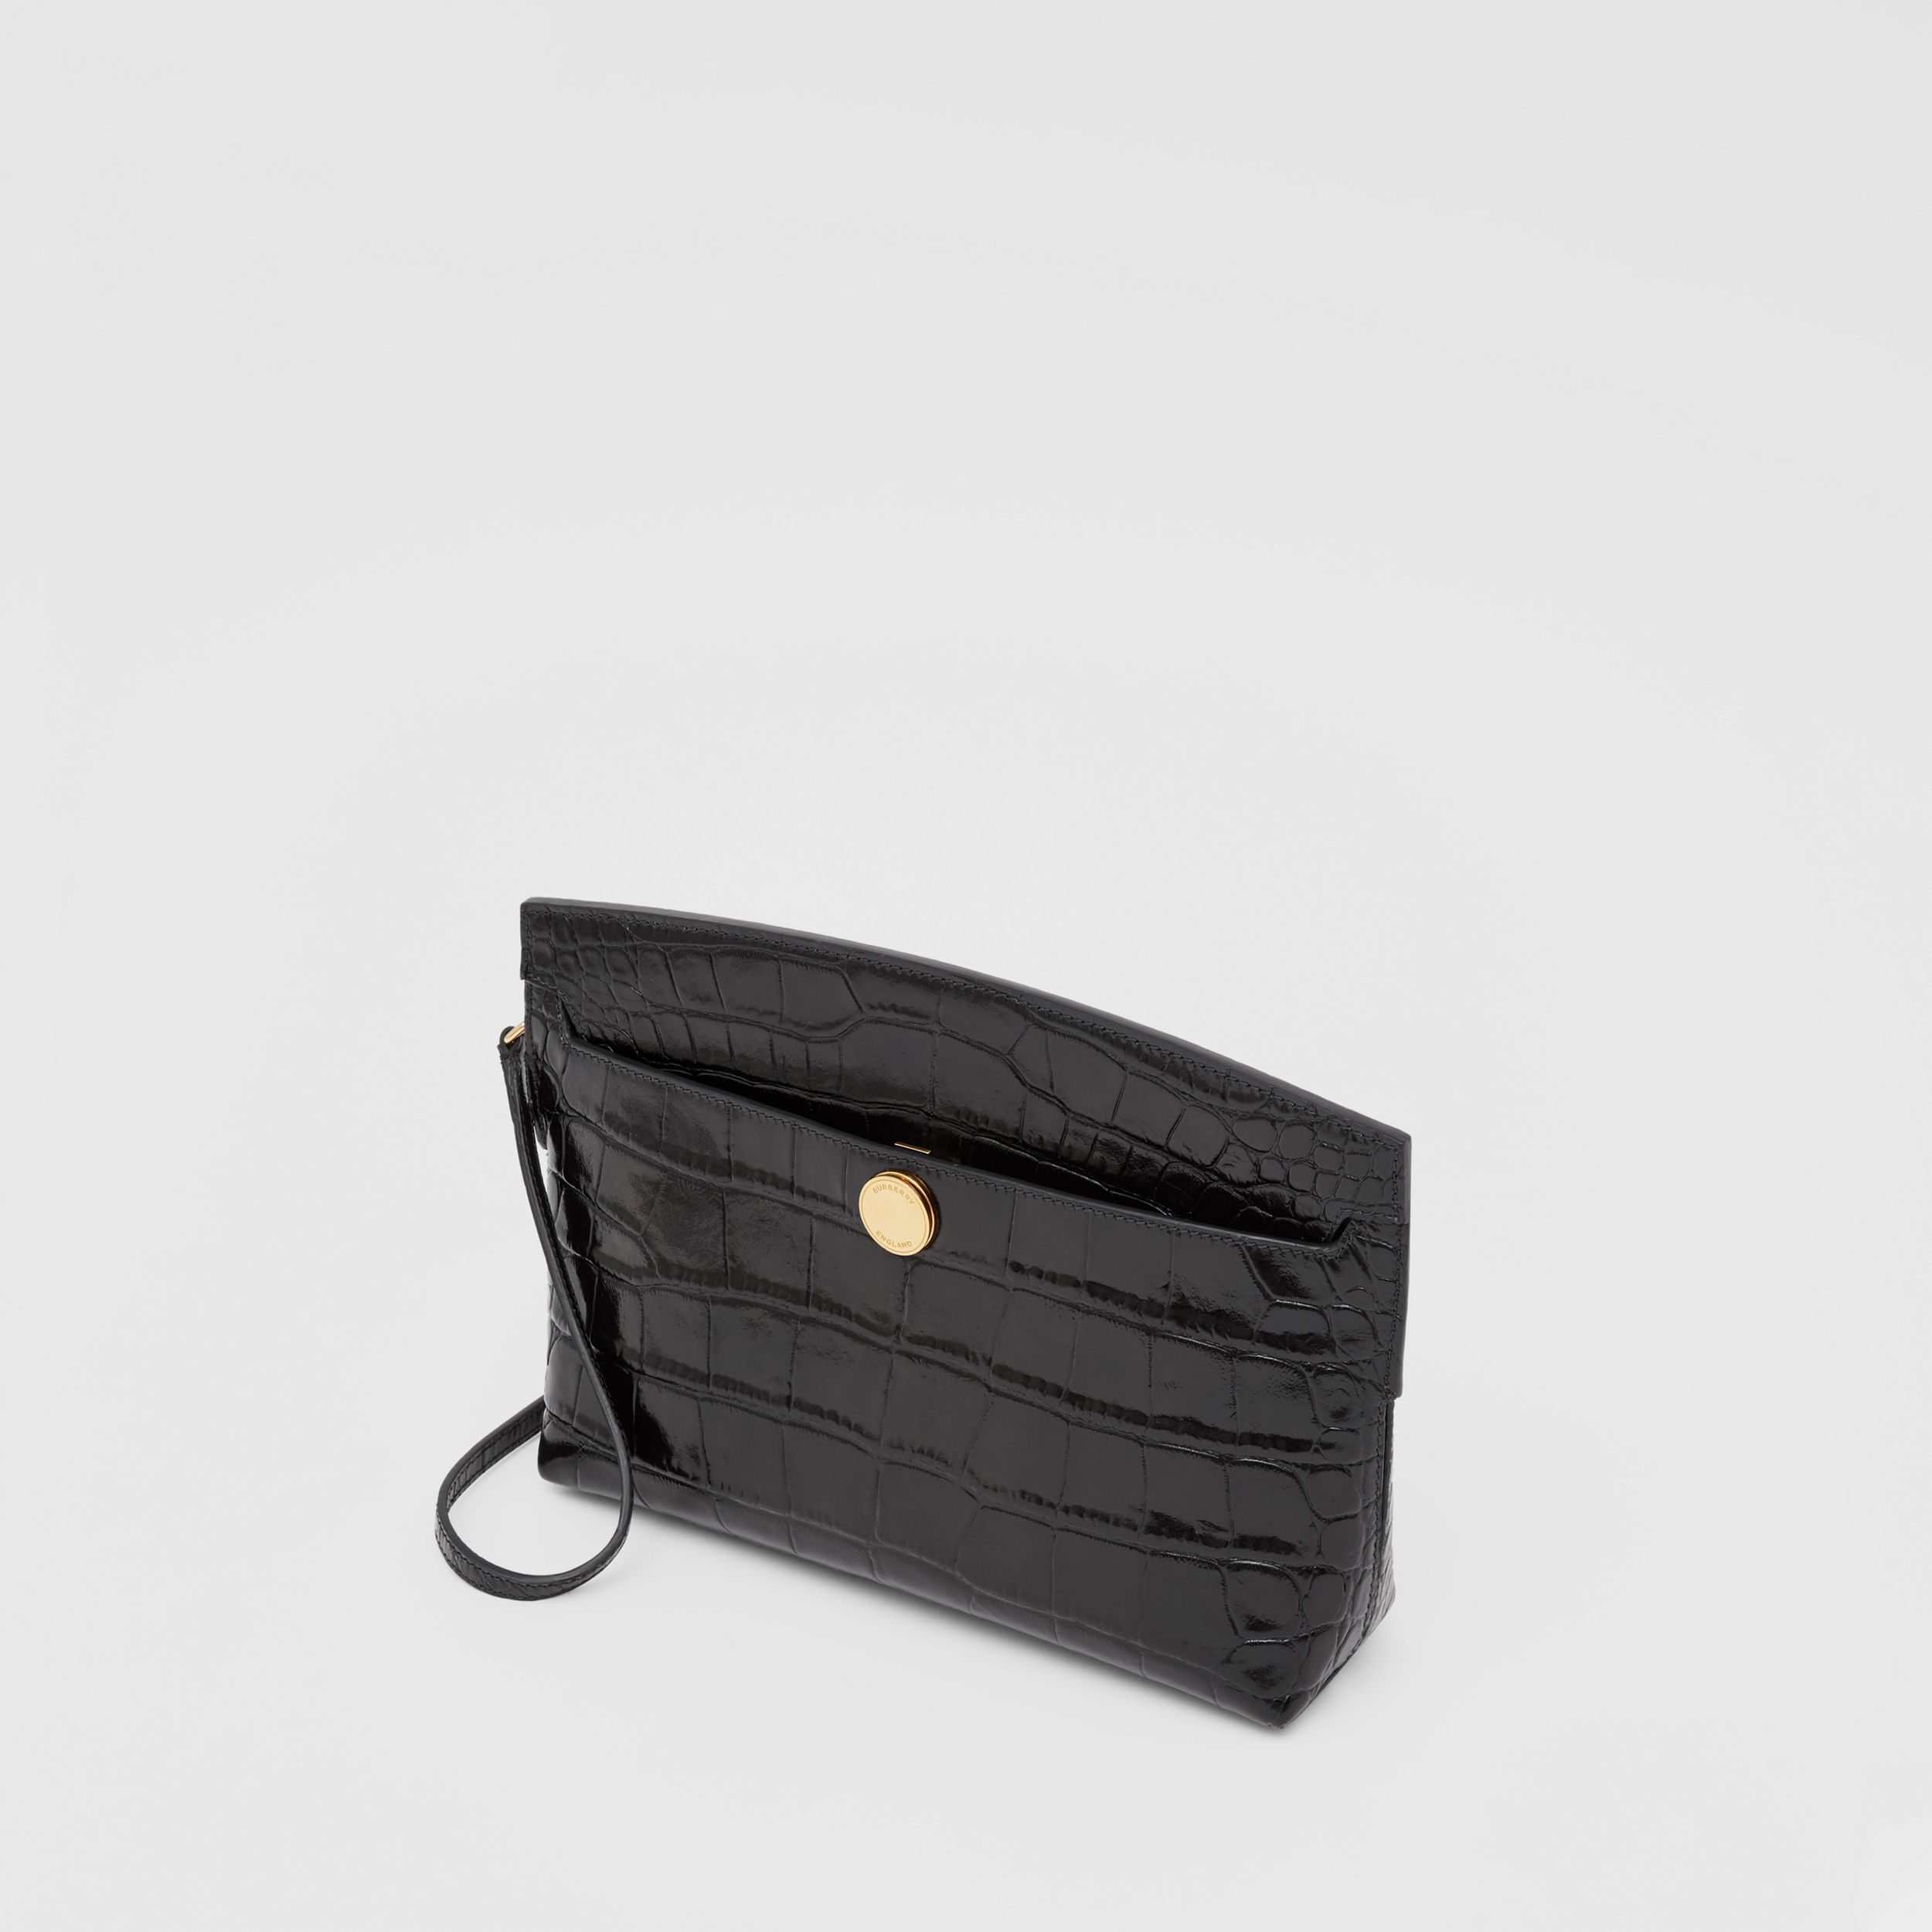 Embossed Leather Society Clutch in Black - Women | Burberry - 4